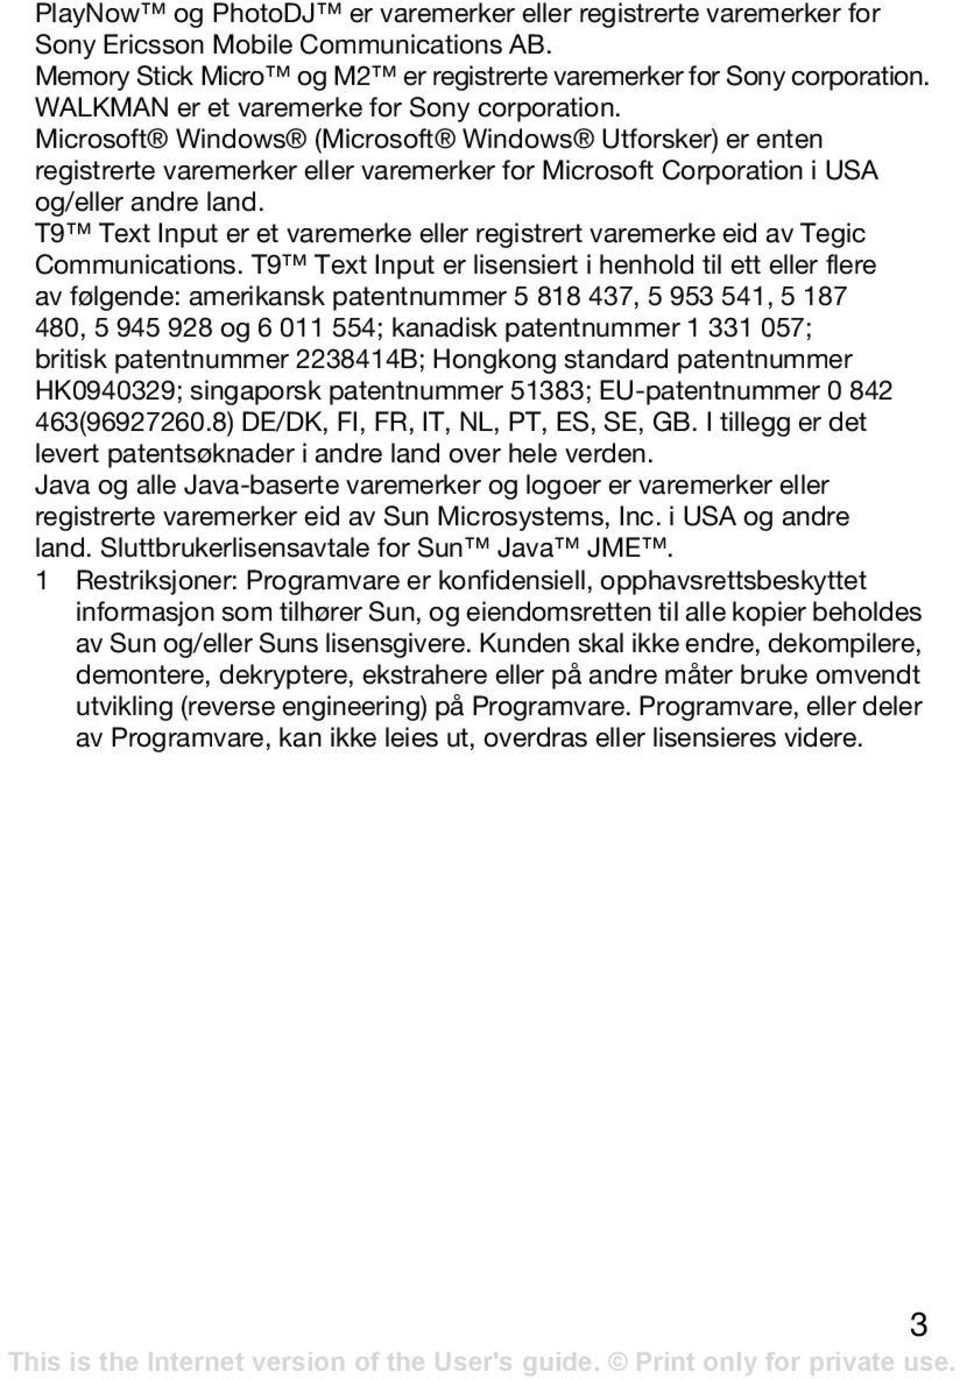 T9 Text Input er et varemerke eller registrert varemerke eid av Tegic Communications.